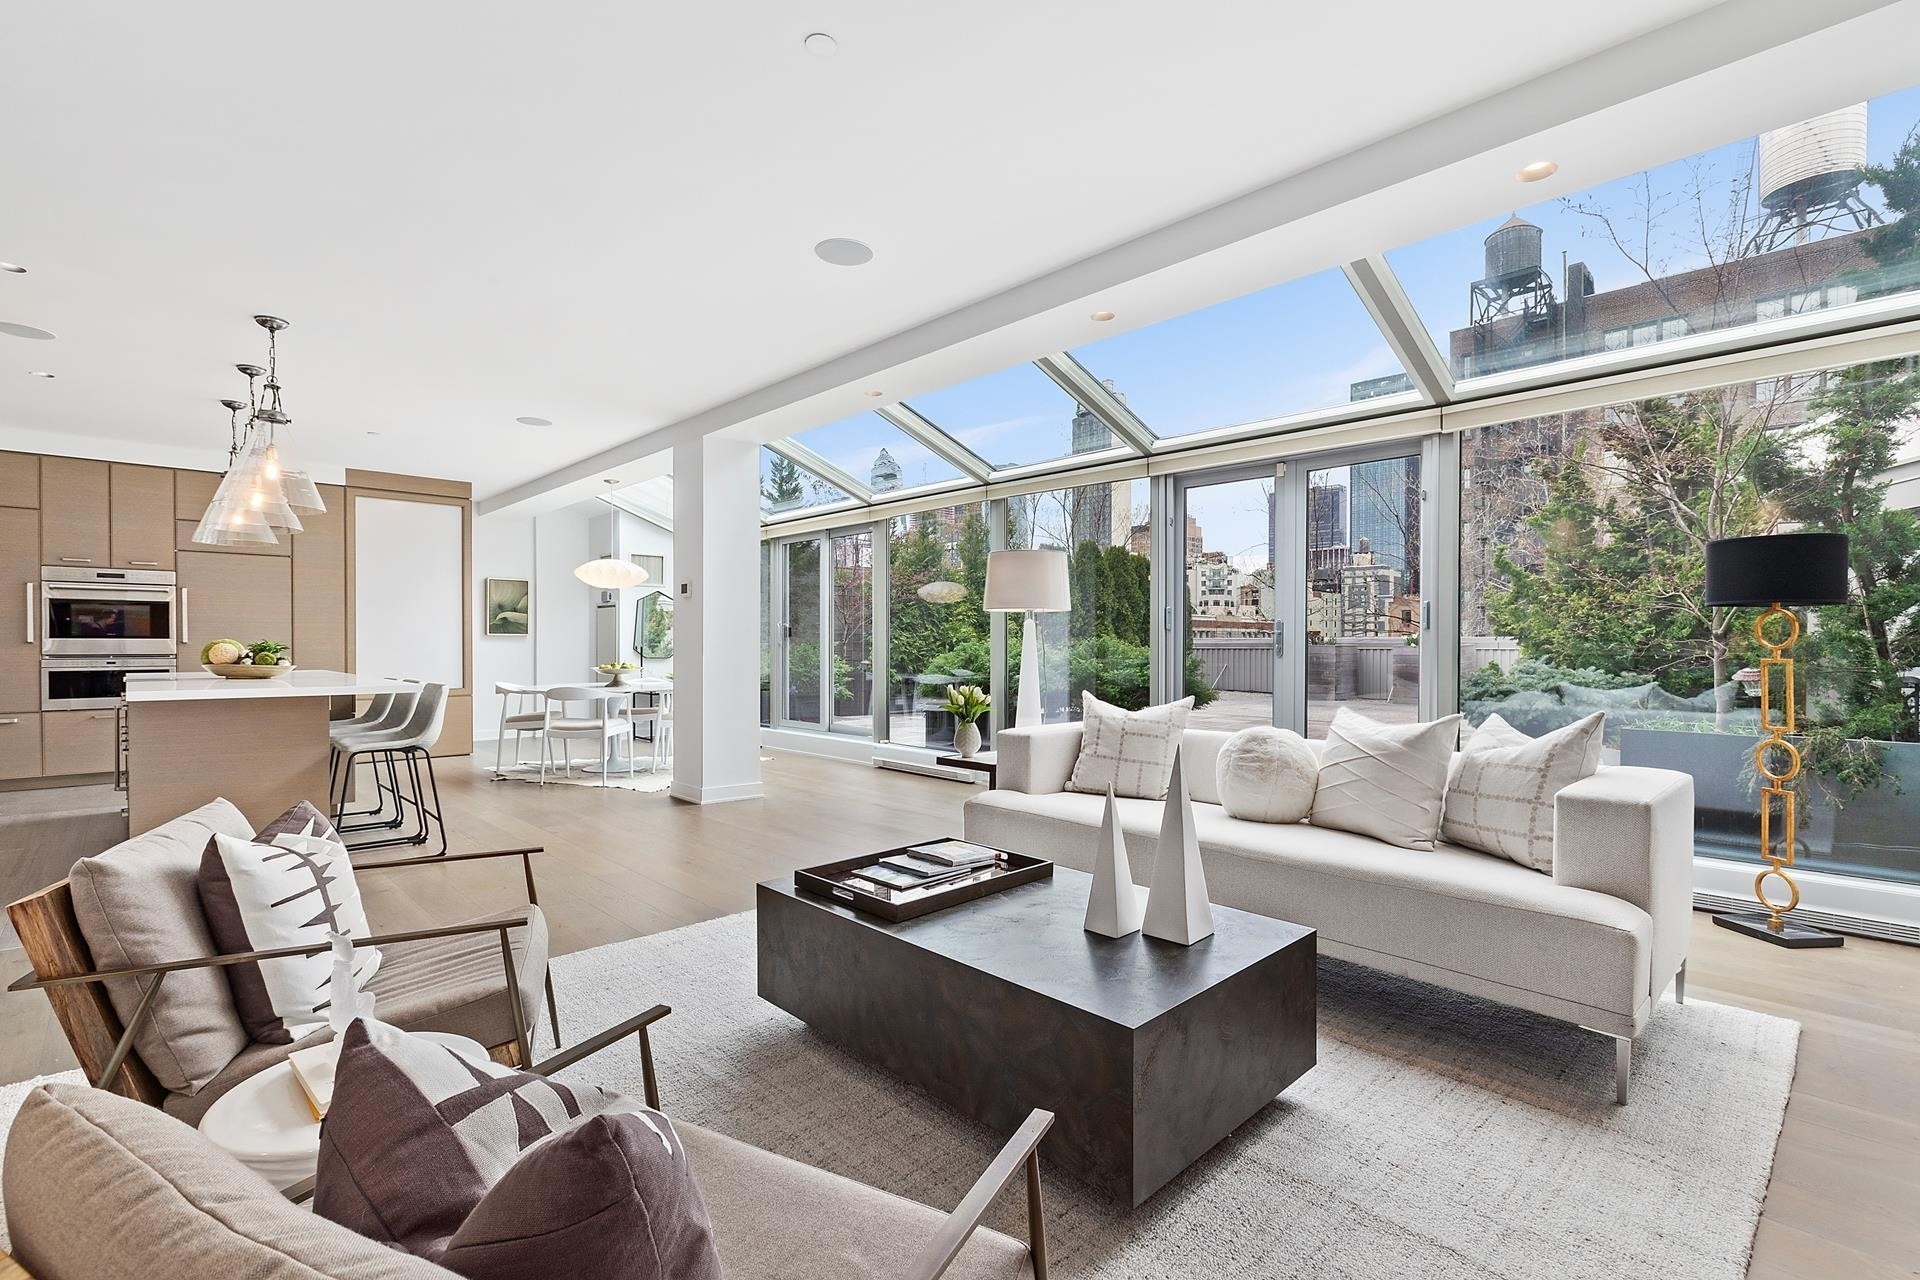 Condominium for Sale at The Cammeyer, 60 W 20TH ST , PHC Flatiron District, New York, NY 10011